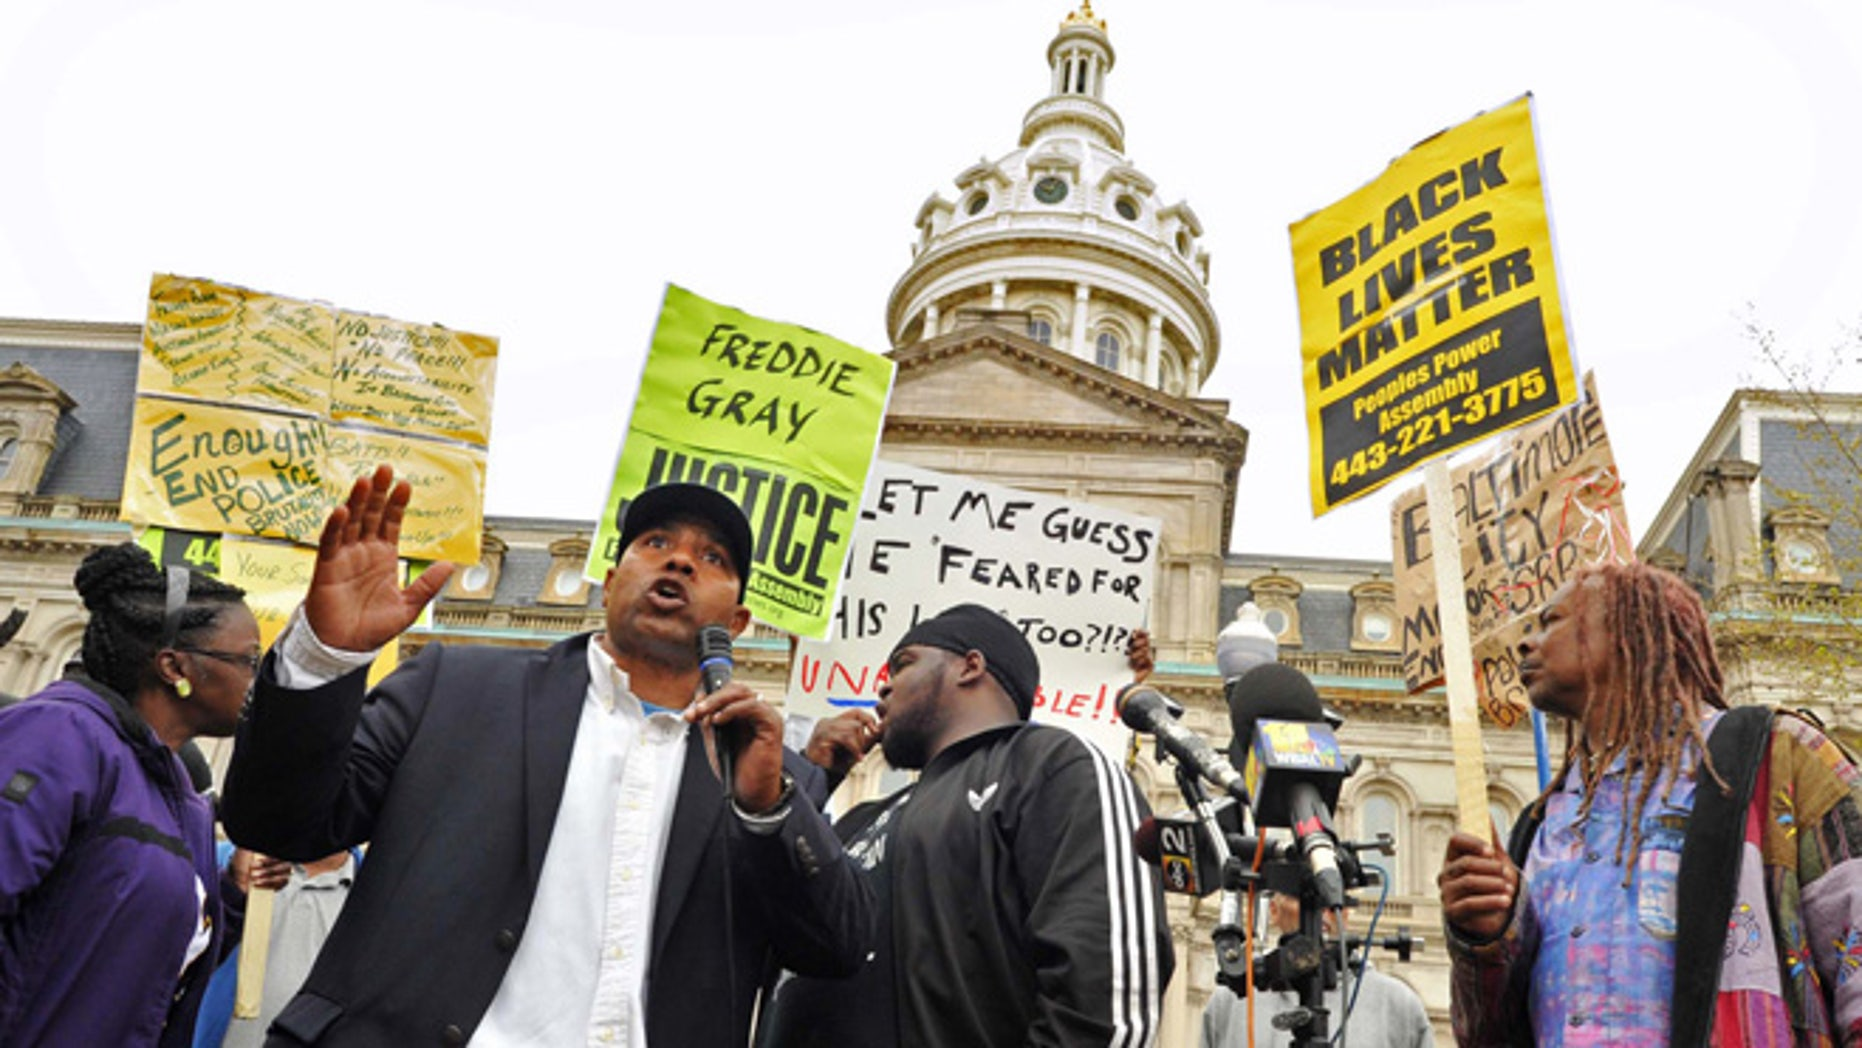 April 20, 2015: Edward Brown speaks at a protest outside City Hall about Freddie Gray in Baltimore.